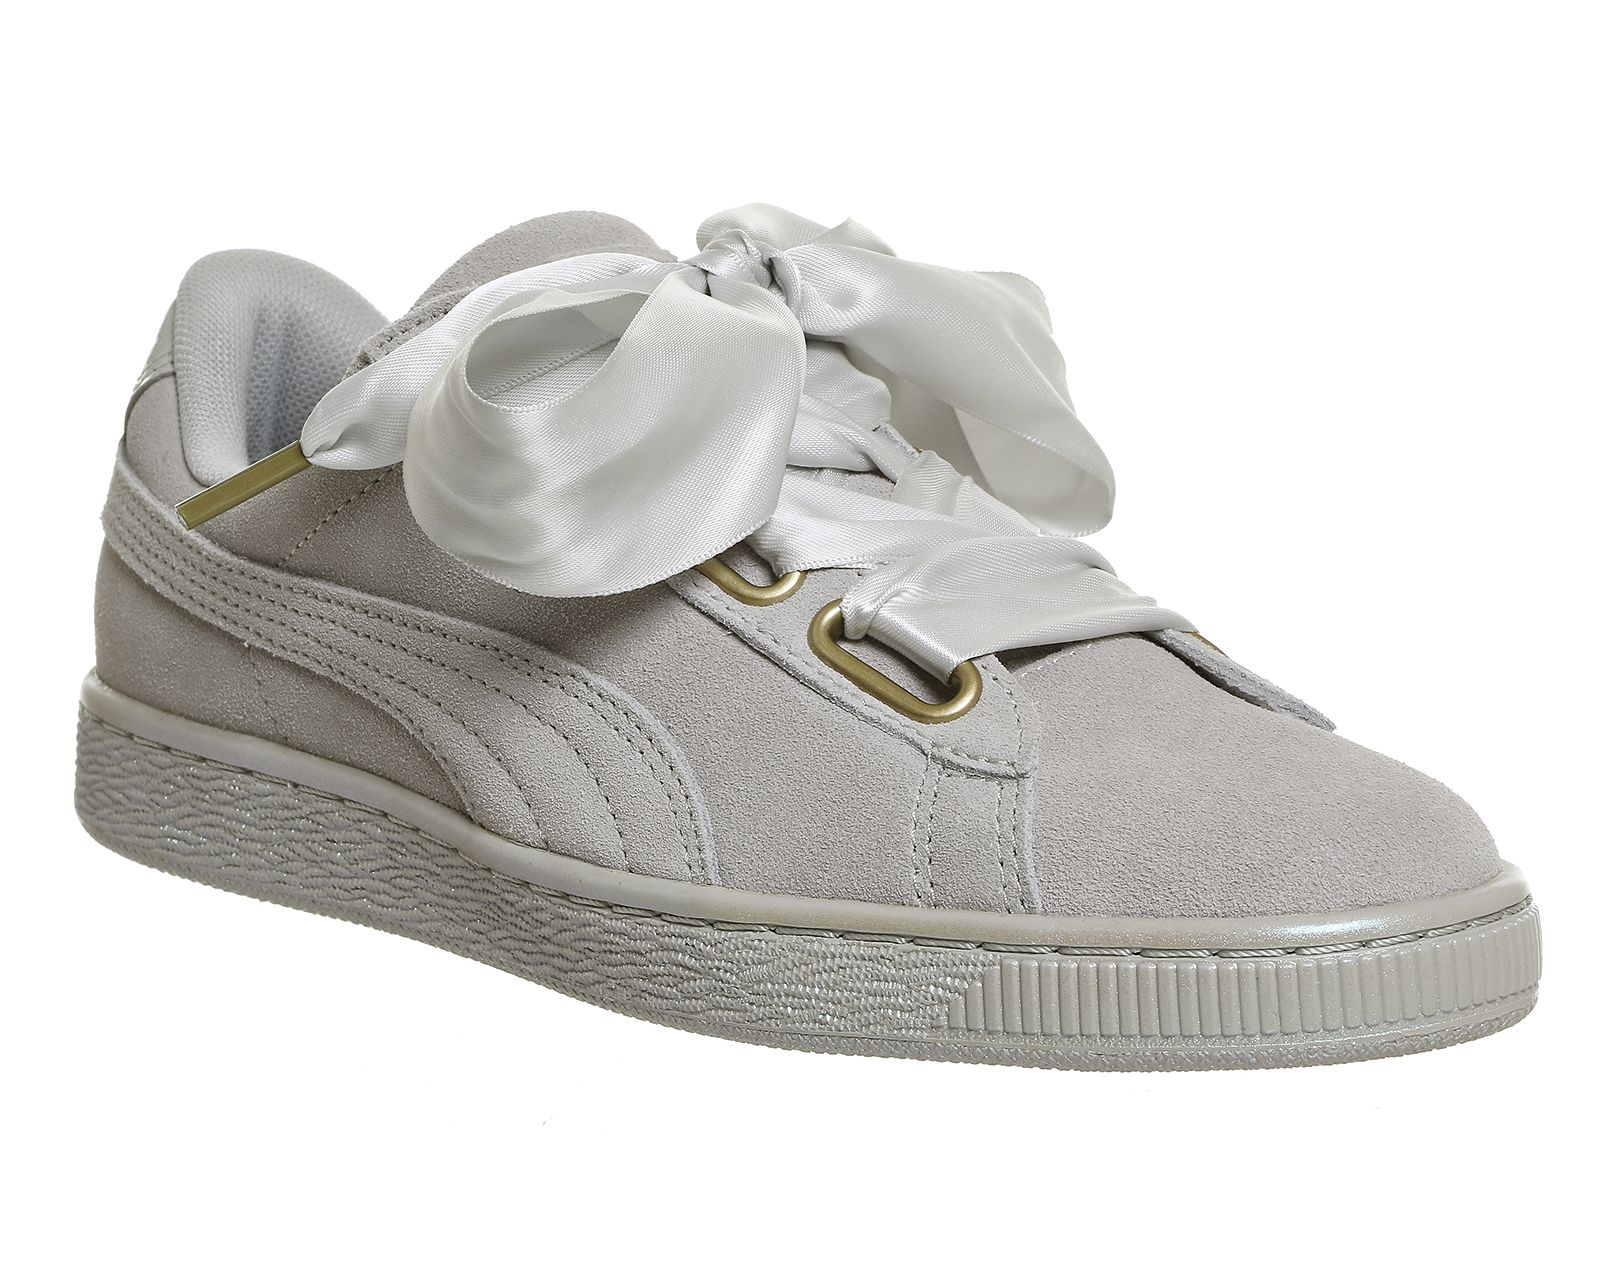 Suede Heart | Puma suede, Womens fashion sneakers, Lace sneakers